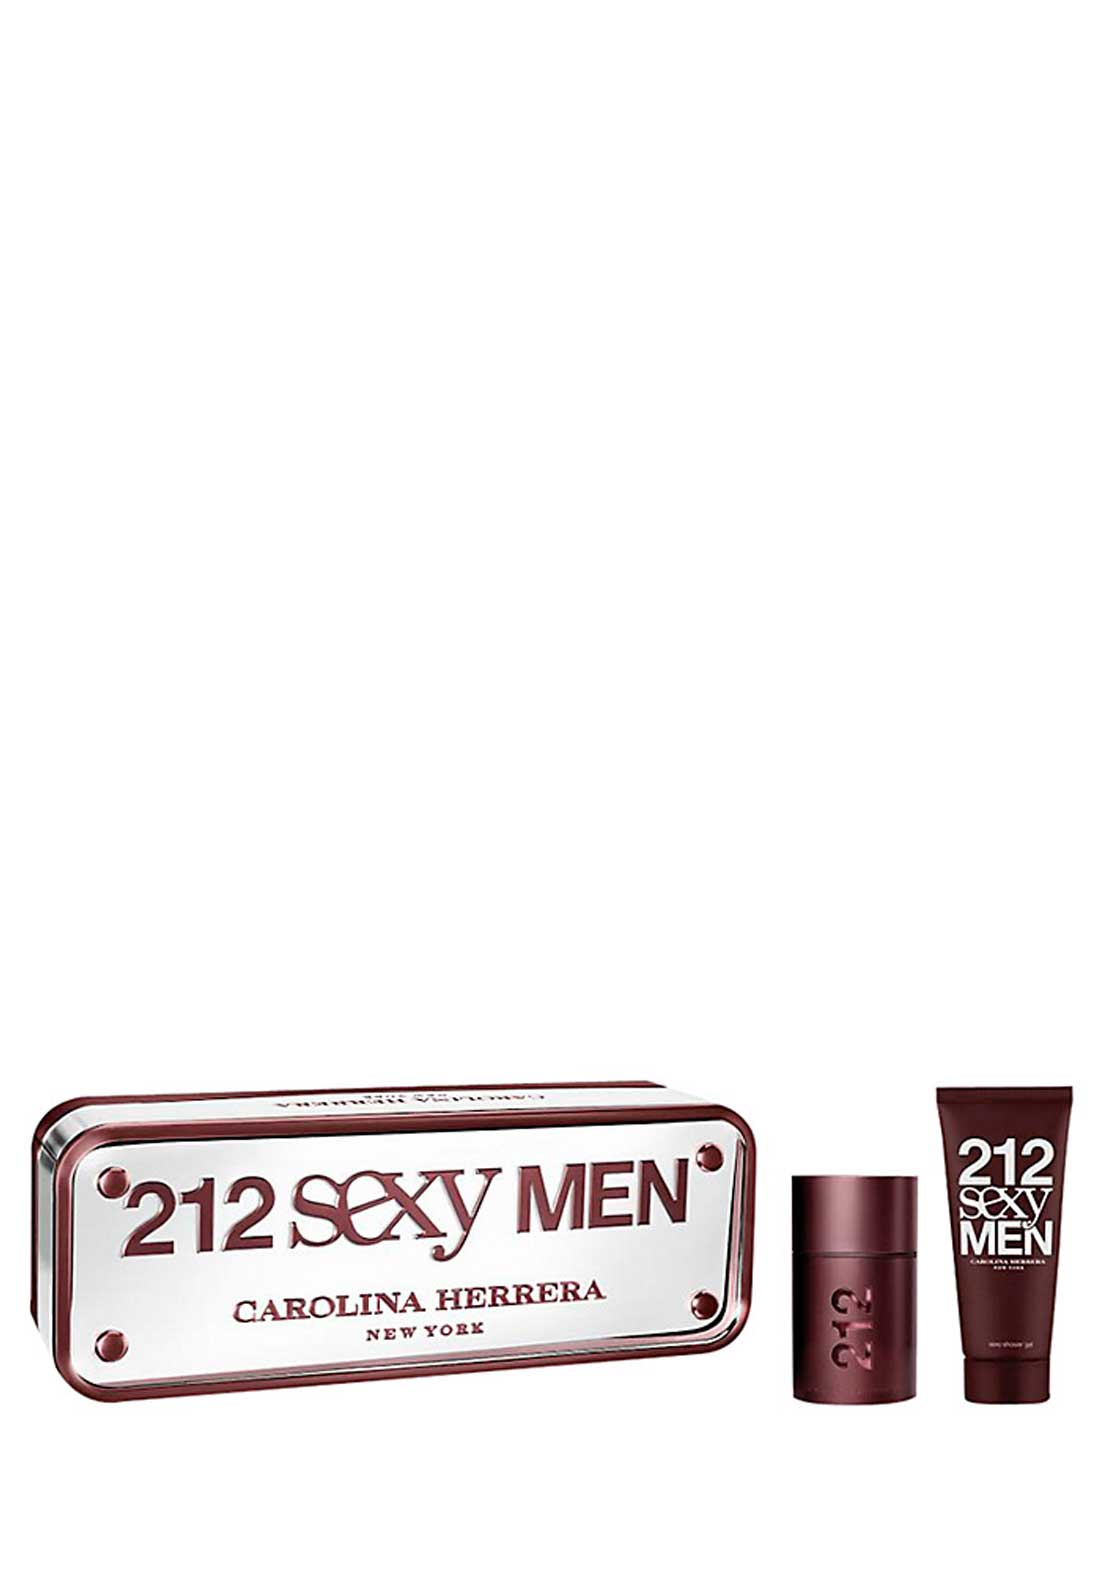 Carolina Herrera 212 SEXY MEN Gift Set, 50ml